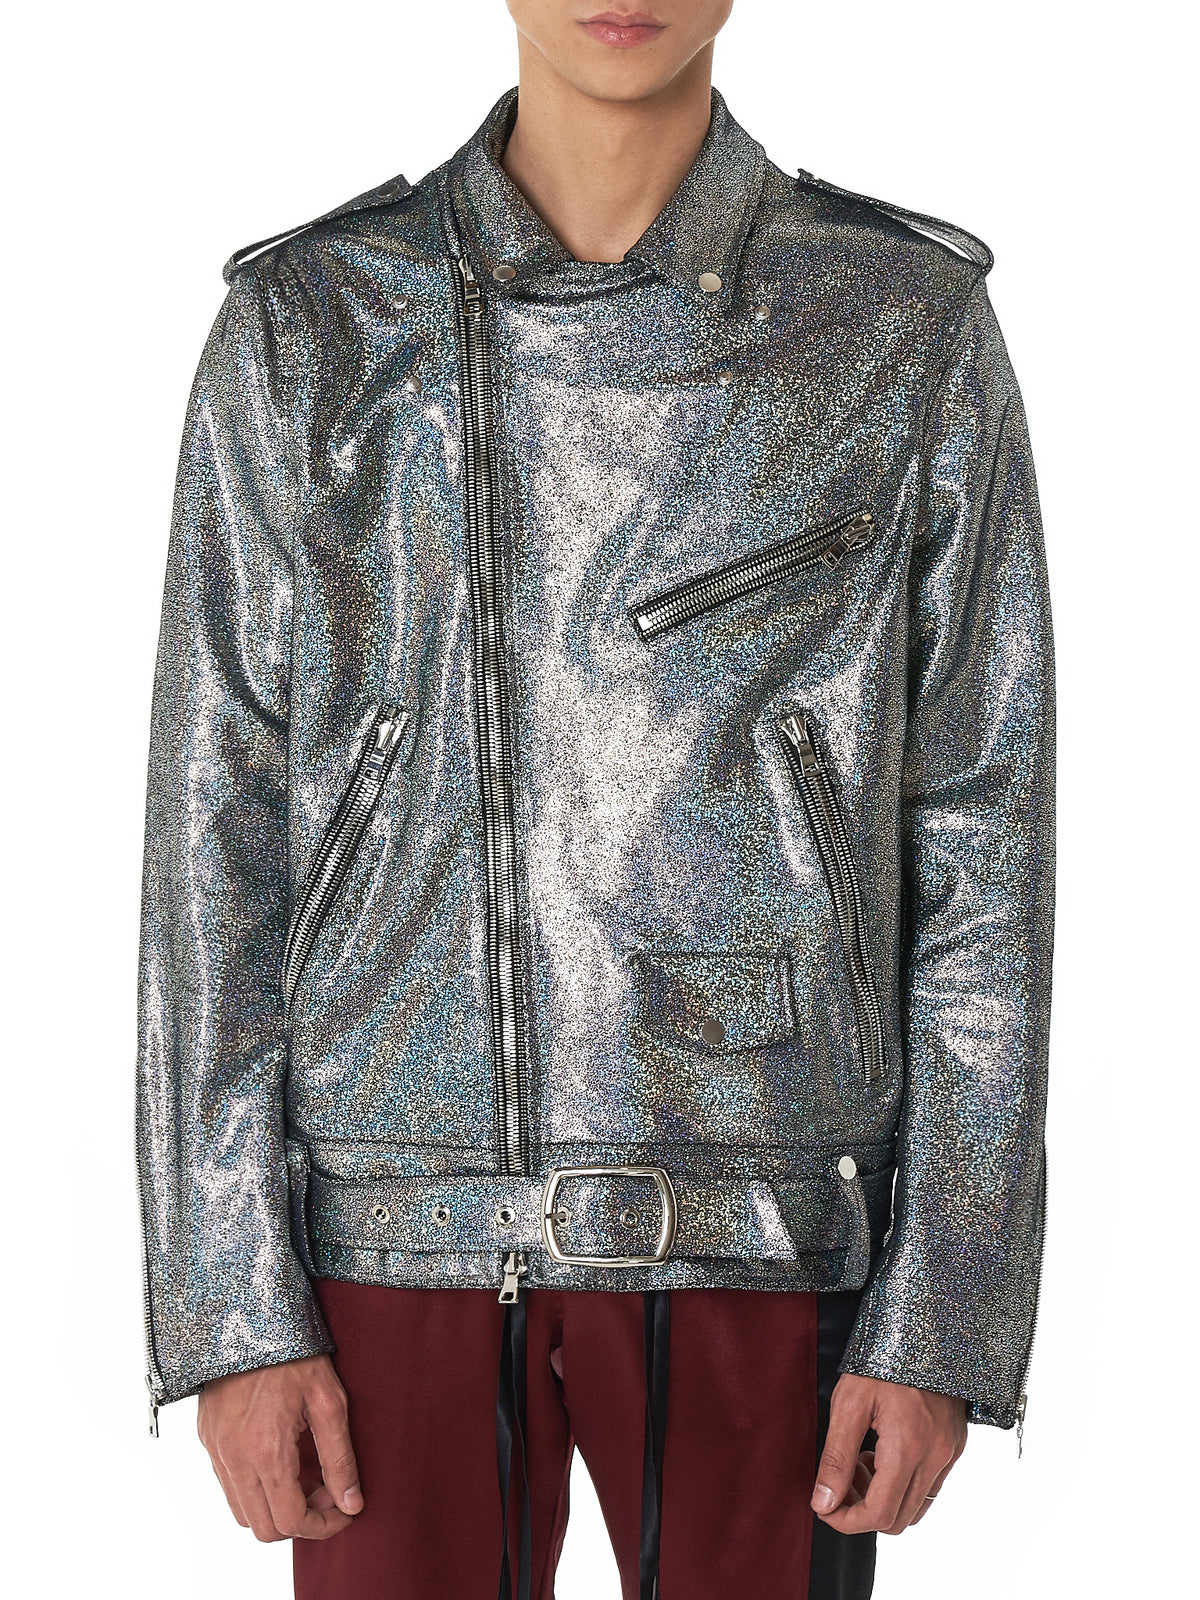 Nahmias Metallic Jacket - Hlorenzo Front